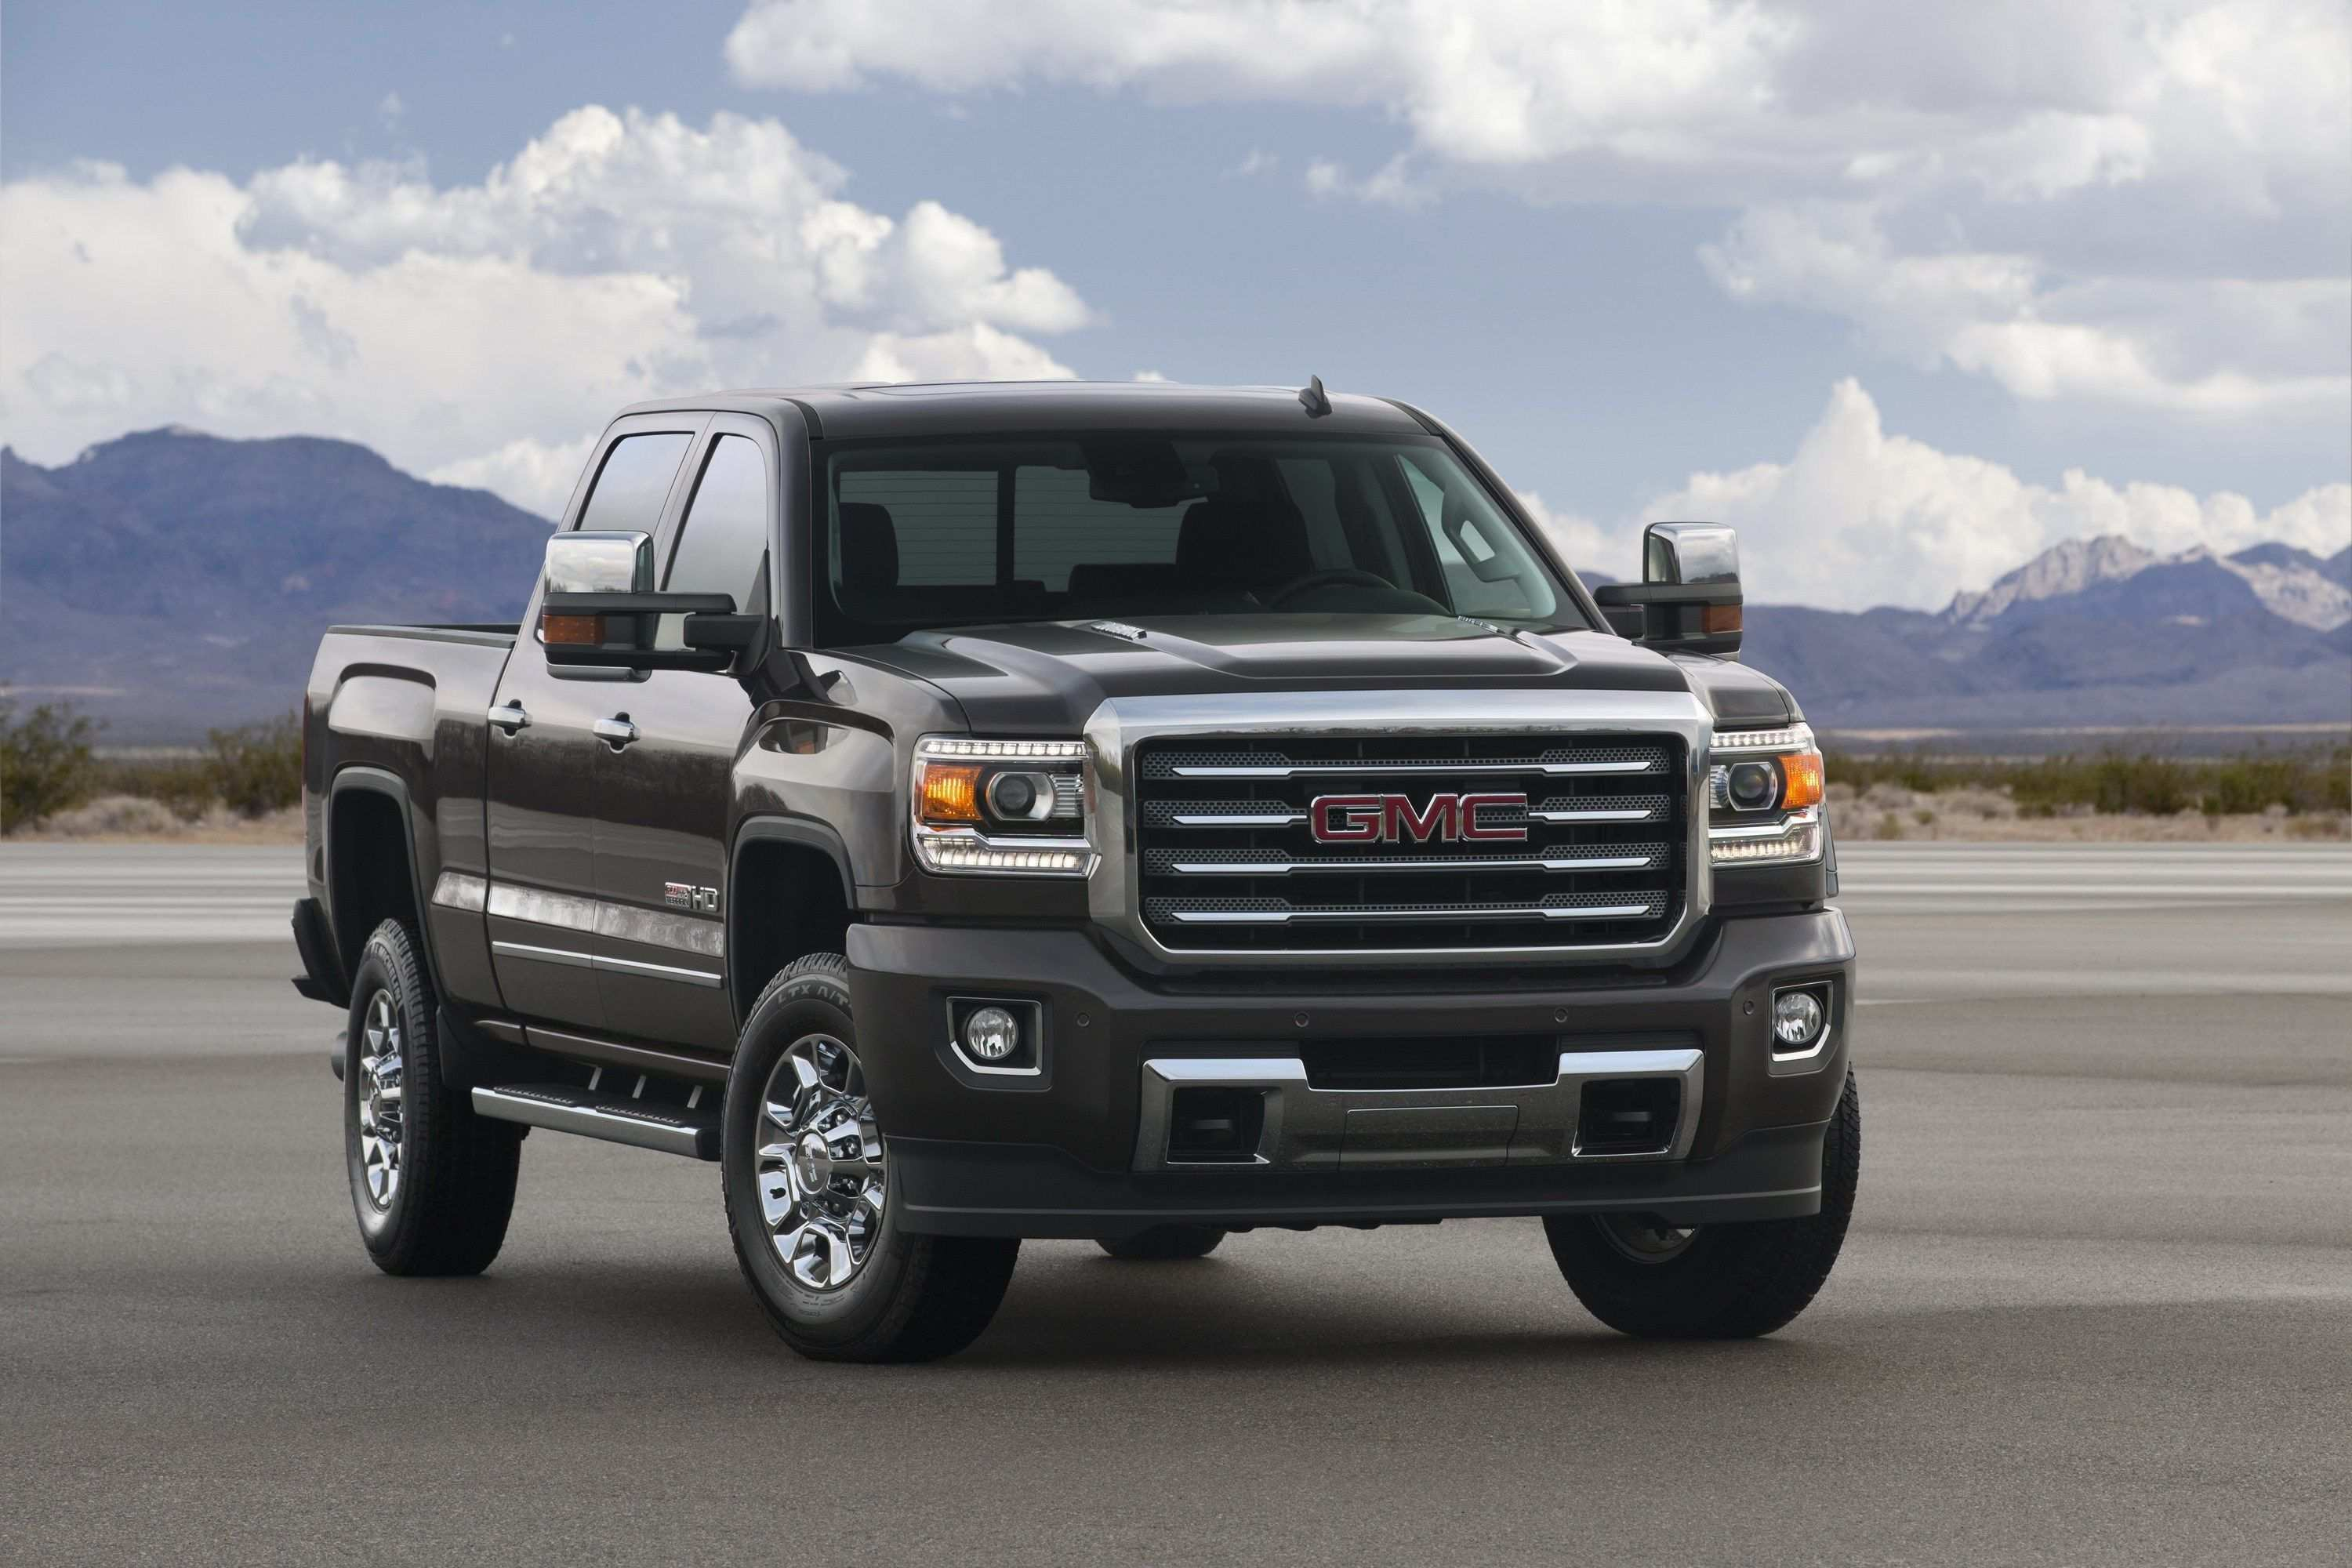 51 Best Review 2020 Gmc Sierra Concept New Concept by 2020 Gmc Sierra Concept